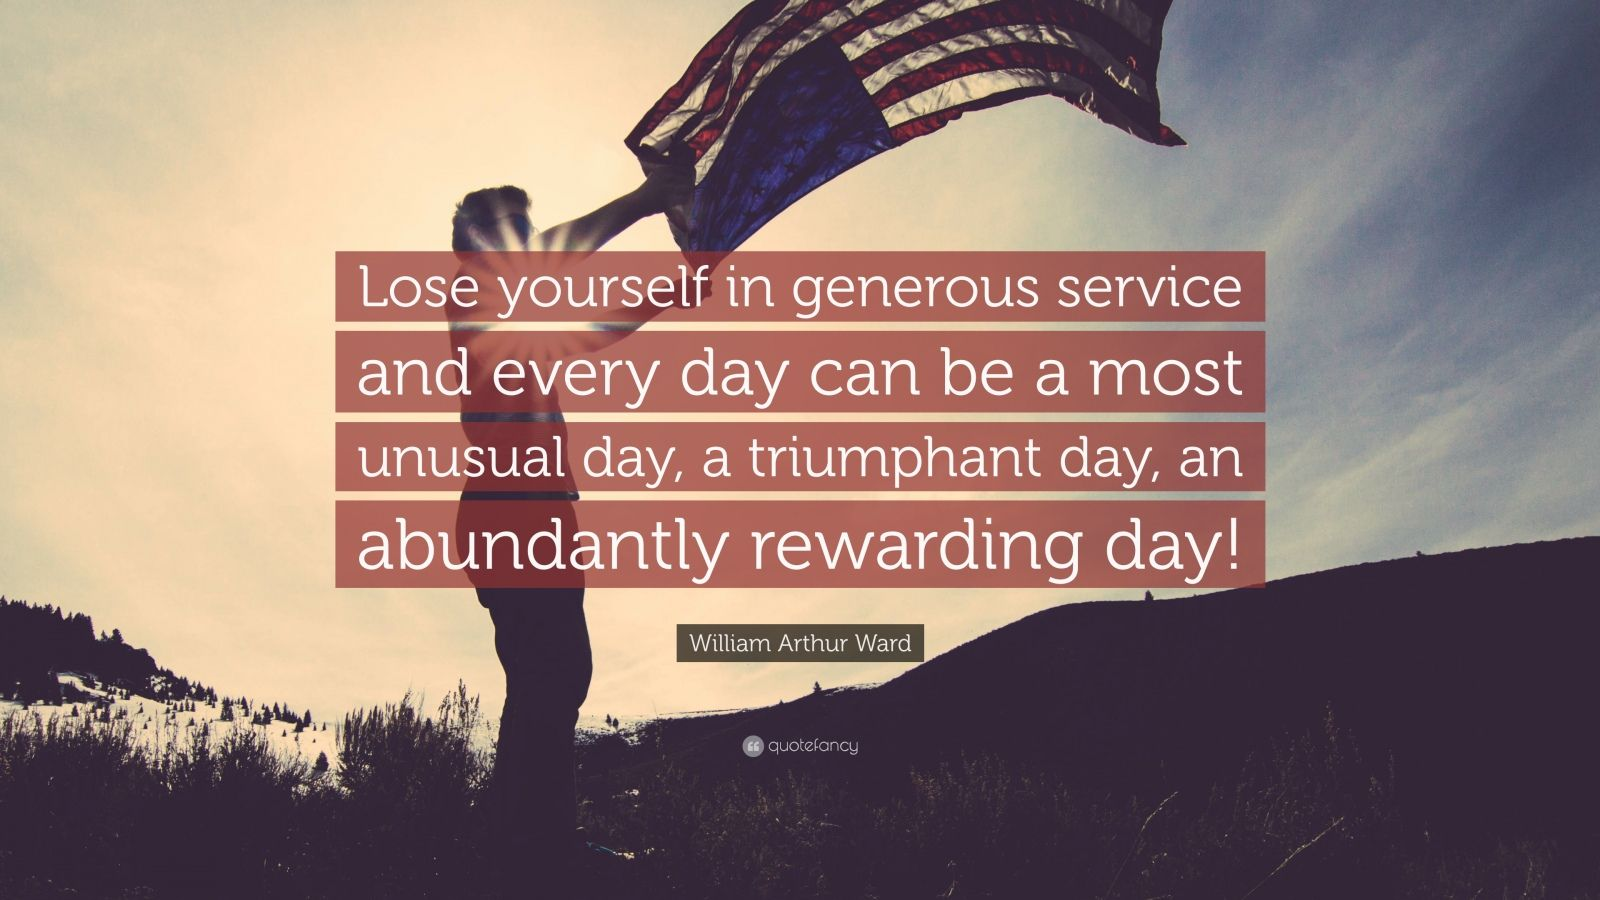 """William Arthur Ward Quote: """"Lose yourself in generous service and every day can be a most unusual day, a triumphant day, an abundantly rewarding day!"""""""